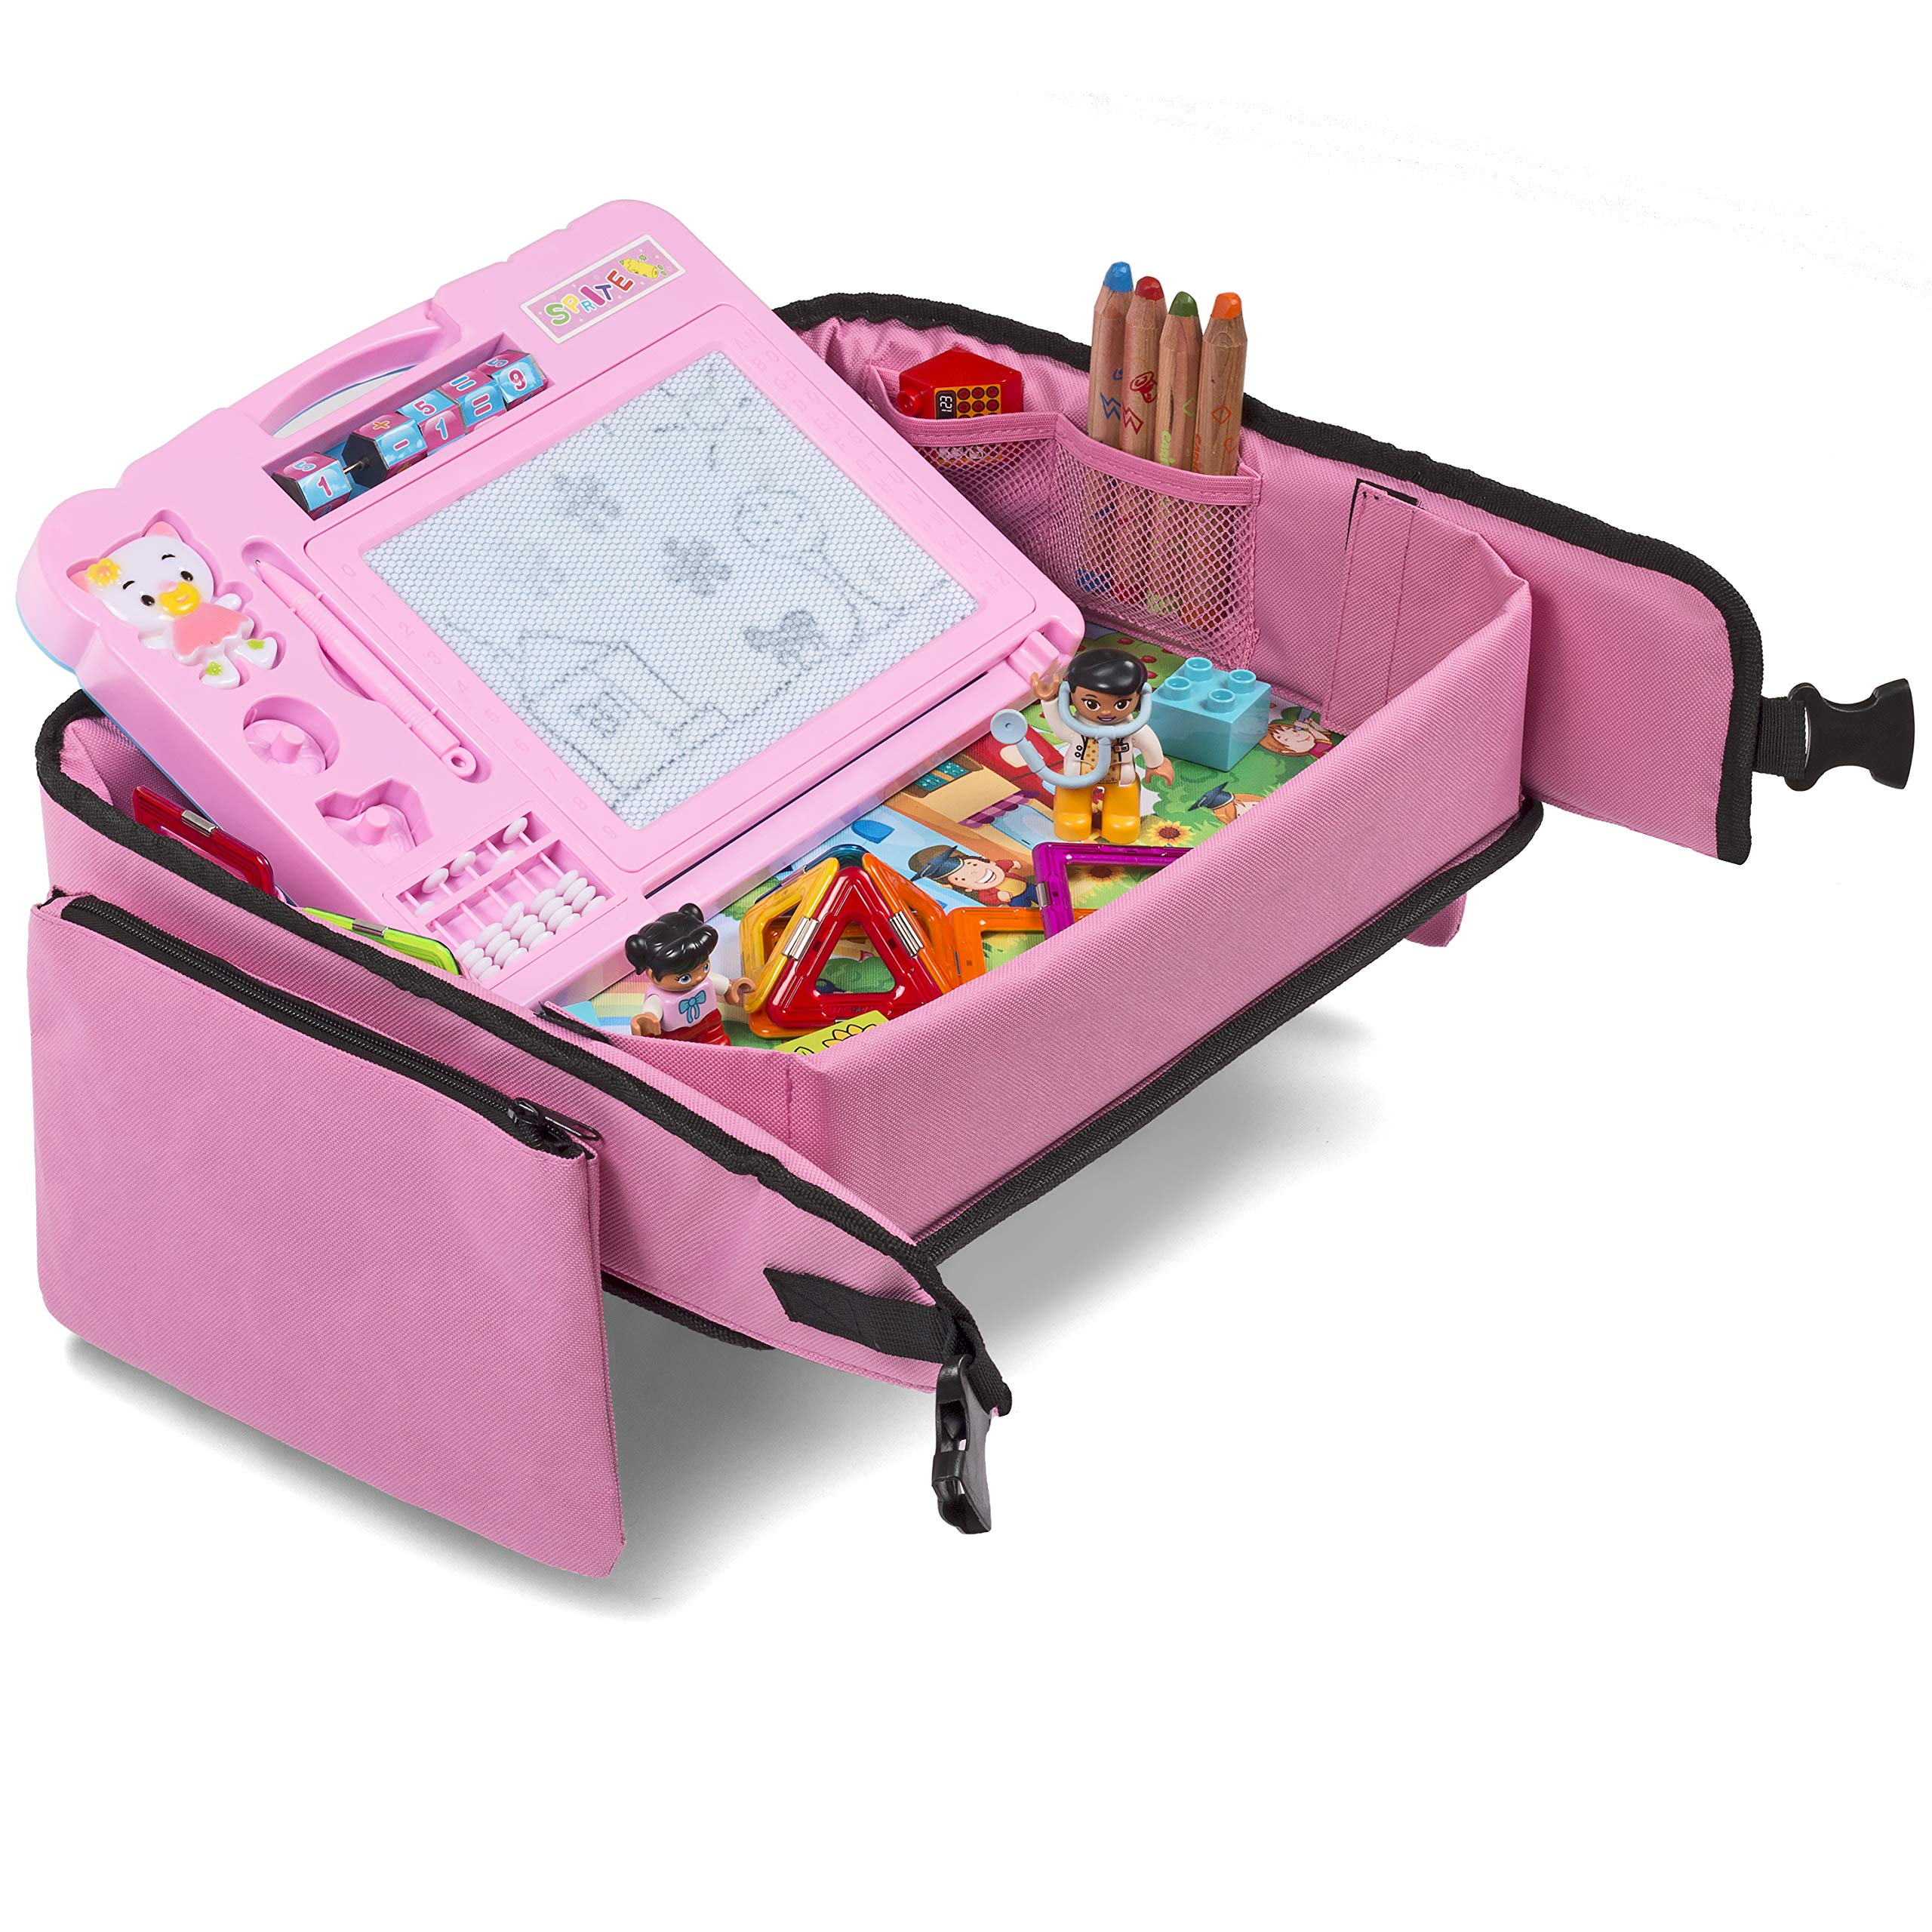 Pink Toddler Car Seat Travel Tray | +Bonus 2 in 1 Magnetic Doodle Board & Chalkboard | Kids Carseat Activity Tray, Lap & Play Tray for Car Seat and Stroller by Kidsmarter